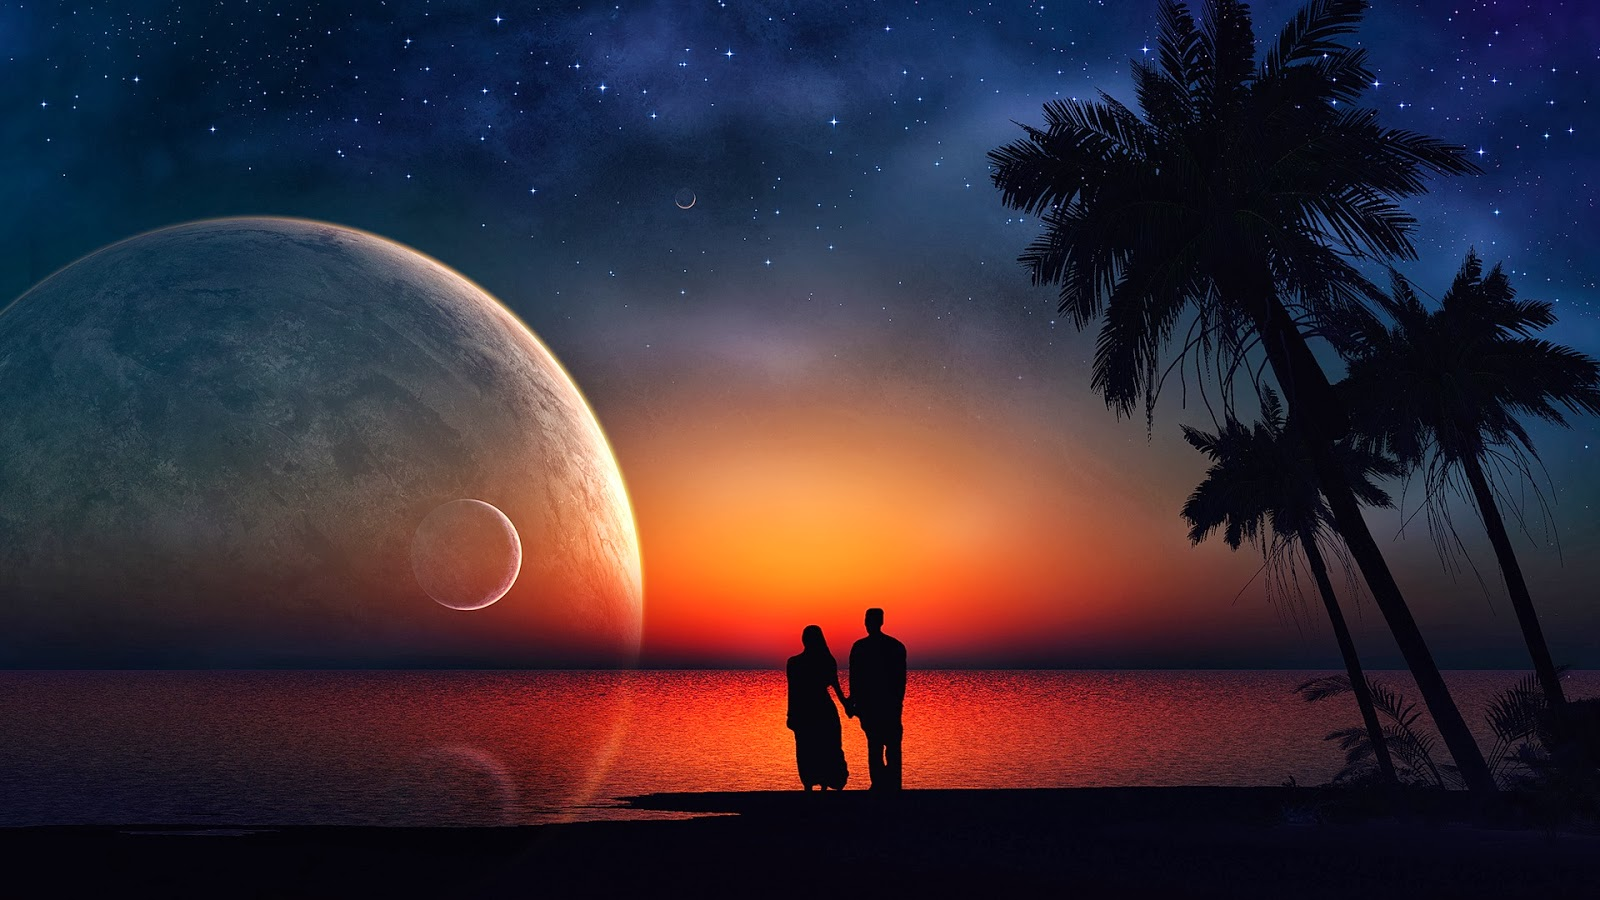 Lovers-in-a-new-world-dream-wallpaper-evening-sunset-image.jpg